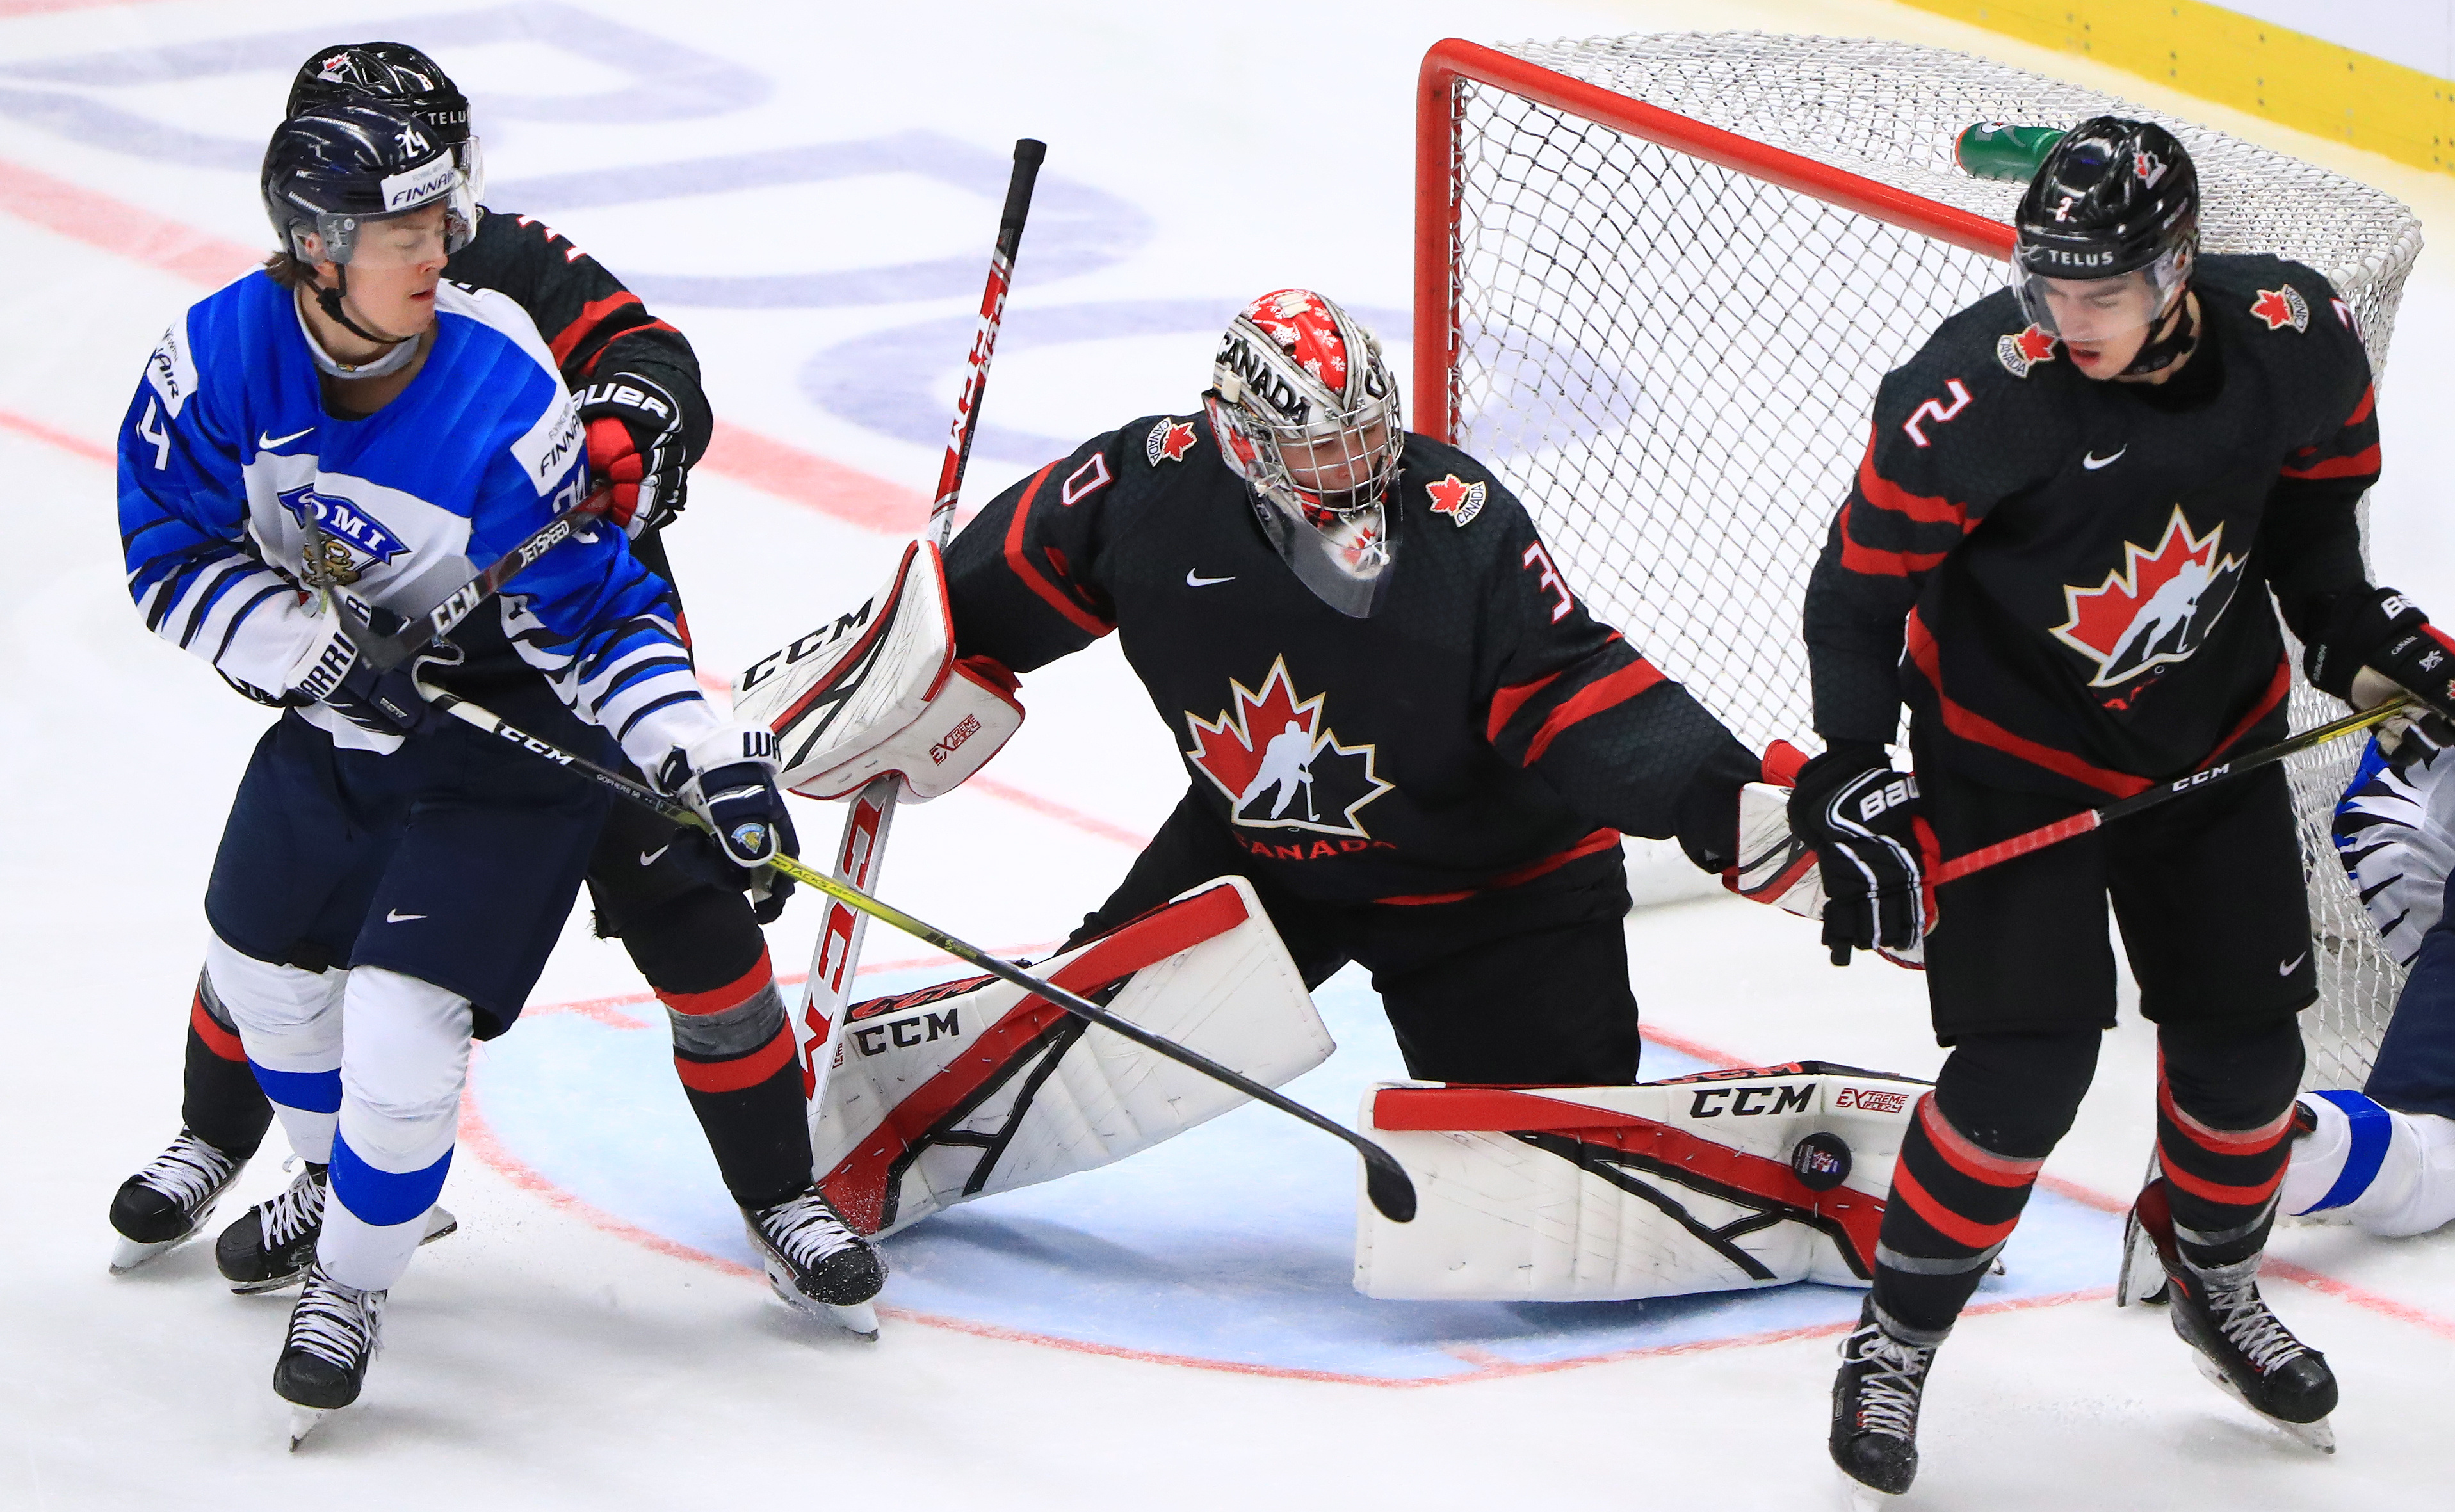 OSTRAVA, CZECH REPUBLIC - JANUARY 4, 2020: Finland's Sampo Ranta (L) and Canada's Kevin Bahl, goalie Joel Hofer (R-L) in their 2020 World Junior Ice Hockey Championship semifinal match at Ostravar Arena.